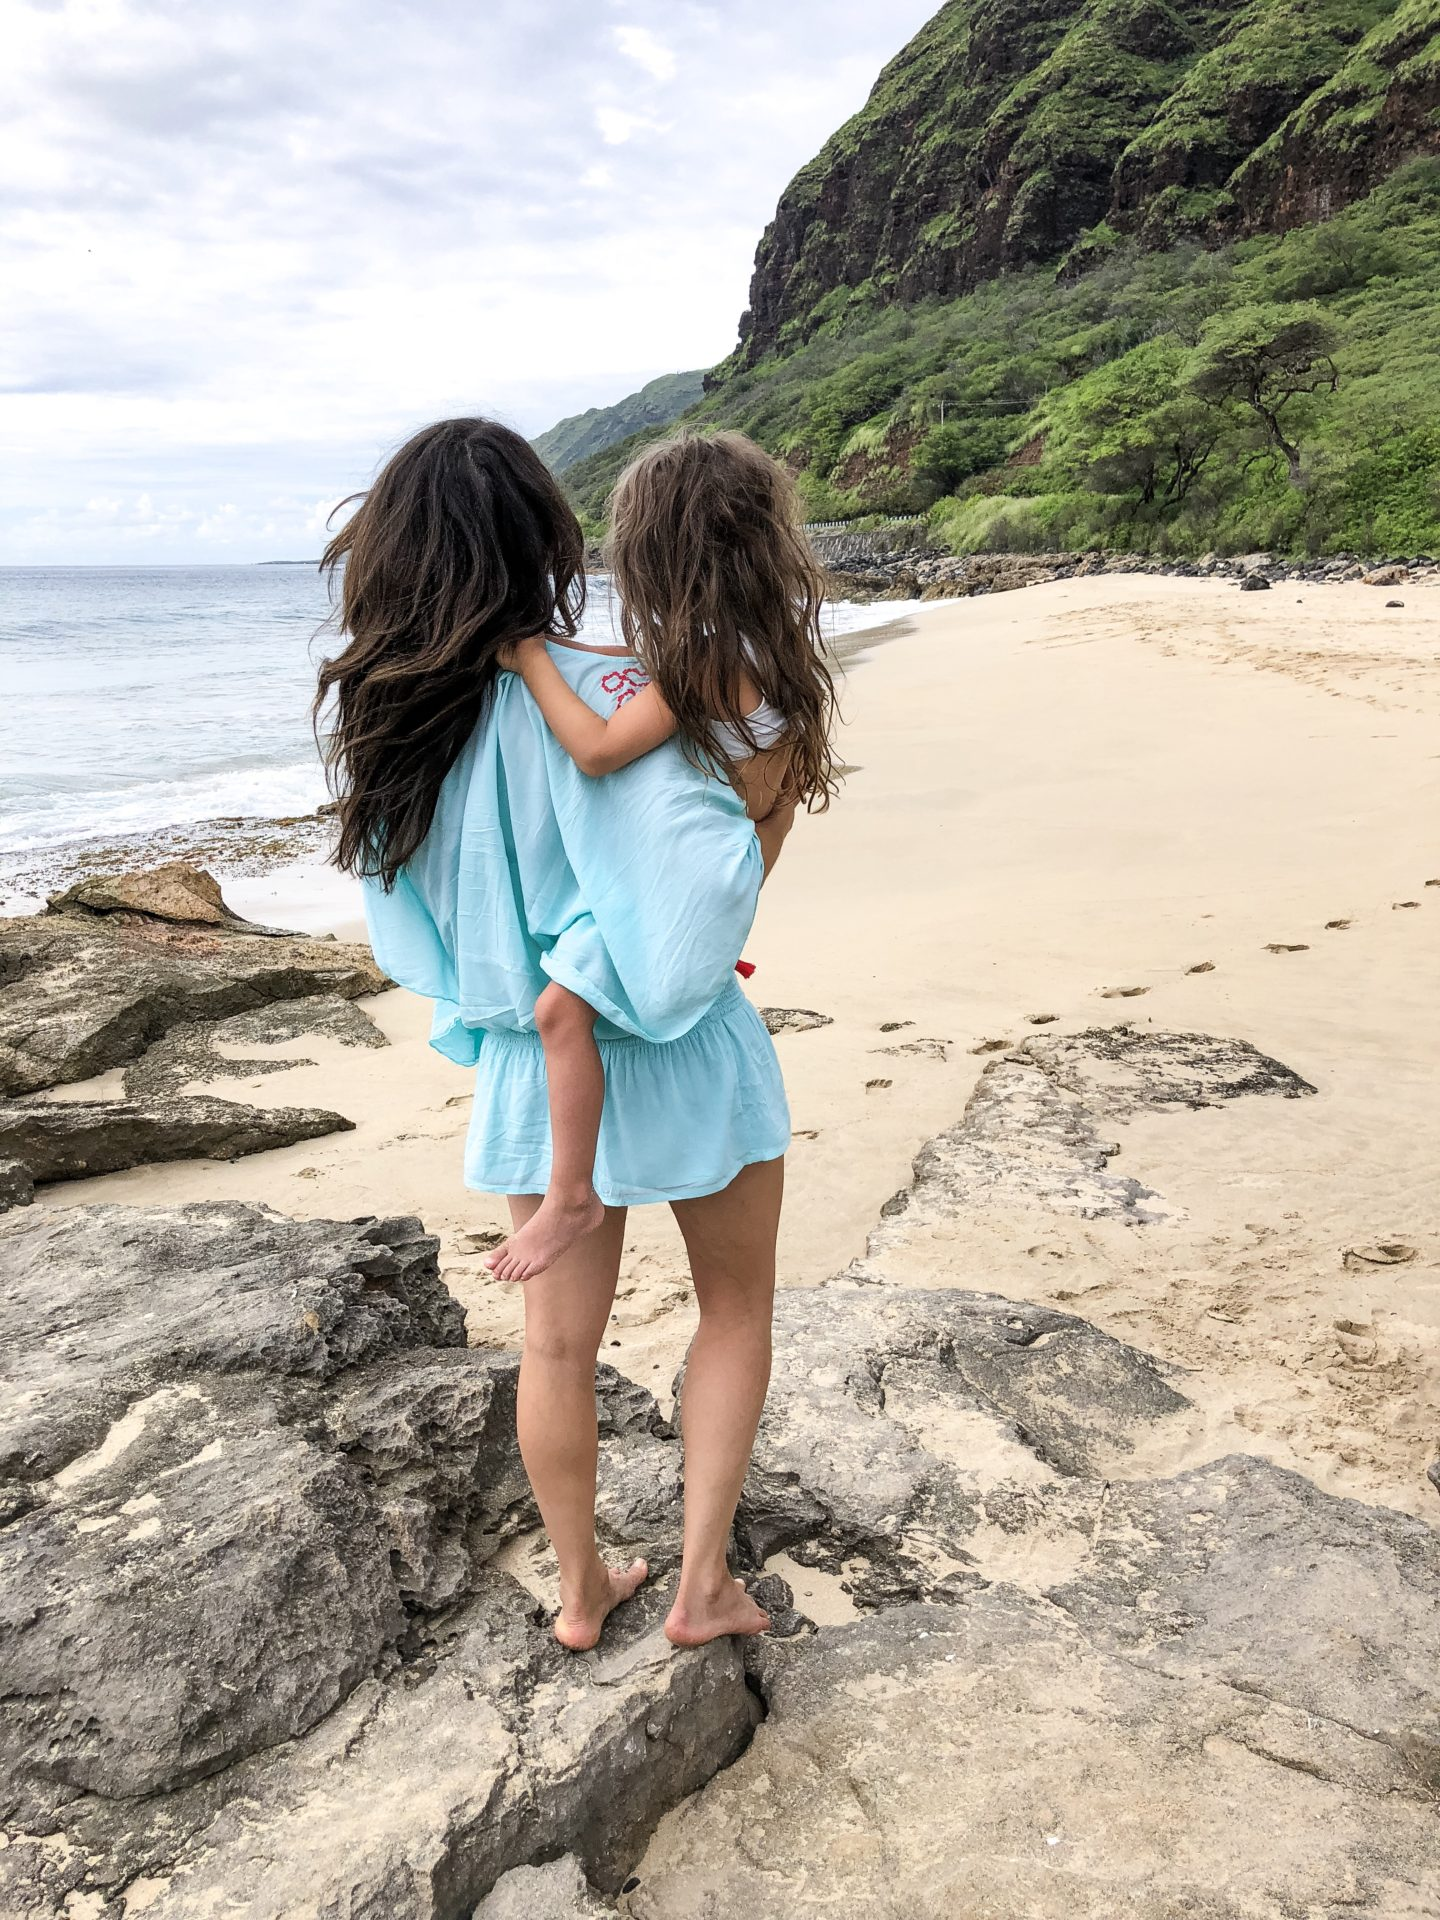 Fifteen Minutes to Flawless Beach Reviews Best Beaches on Oahu